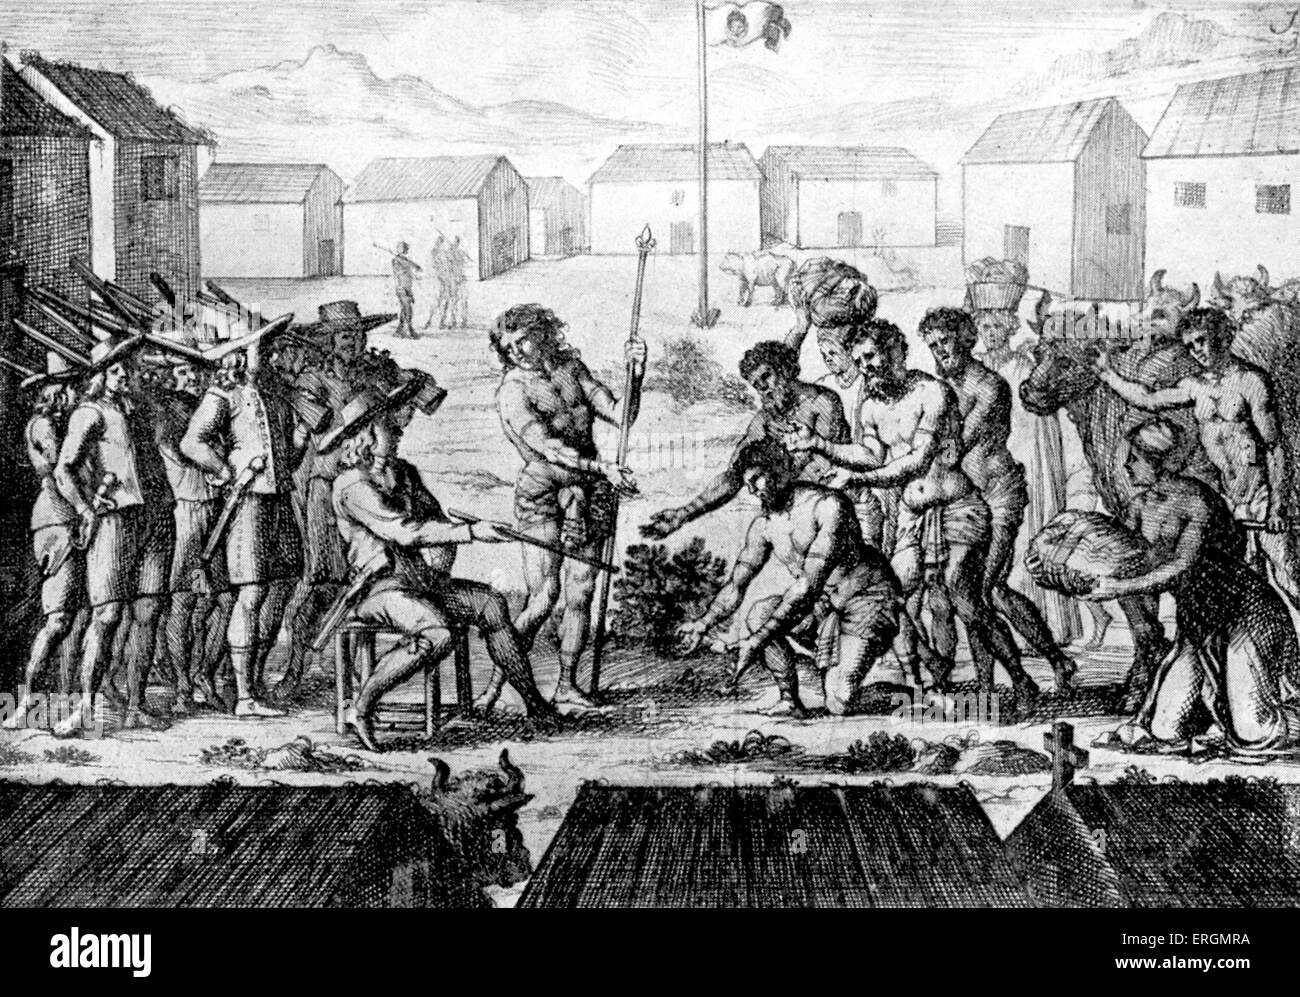 The hoisting of the French flag in Madagascar in mid 17th century.  Madagascarians seen welcoming armed French officials - Stock Image